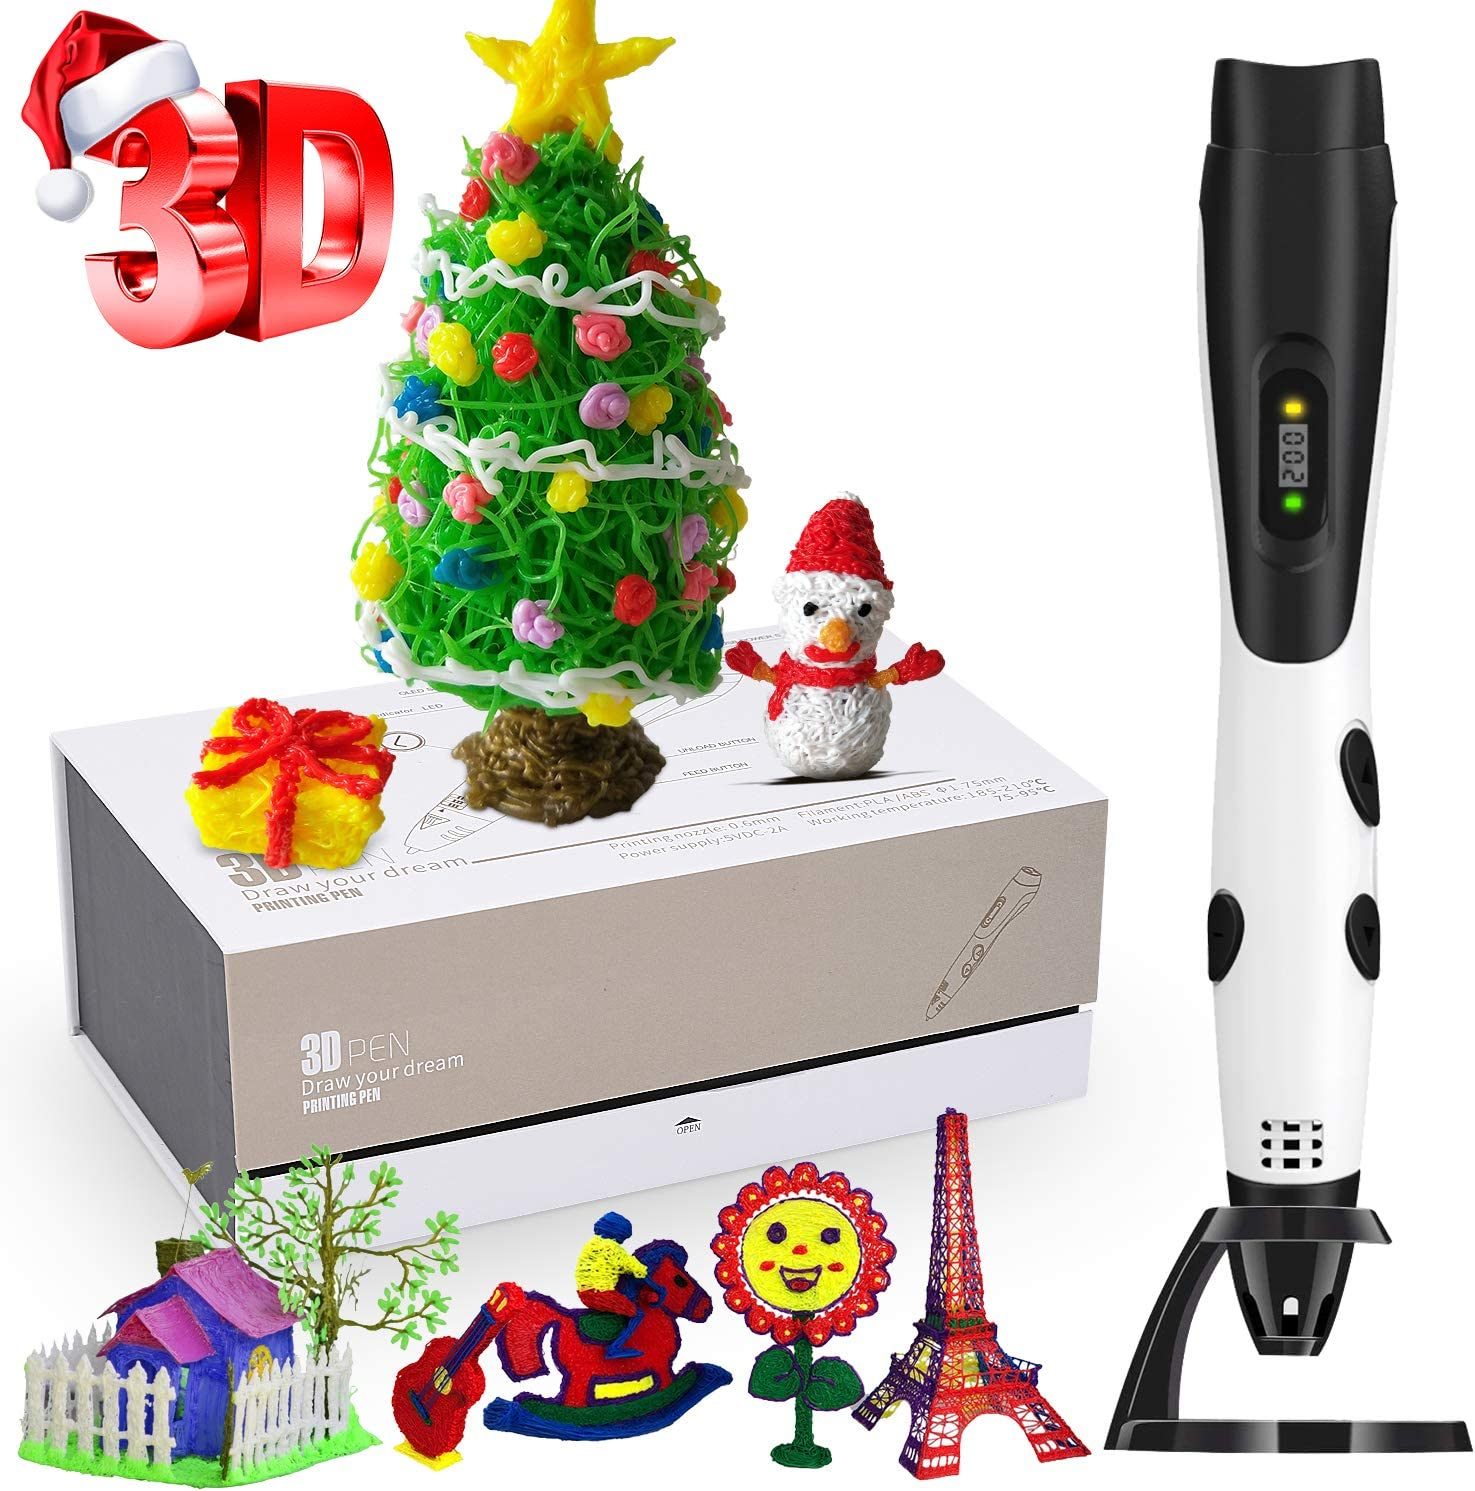 3D Printing Pen, Professional 3D Pen with LCD Screen and 12 Colour Filaments, Safe and Easy to Use WAS £39.99 NOW £25.99 w/code K7RMUFGR @ Amazon